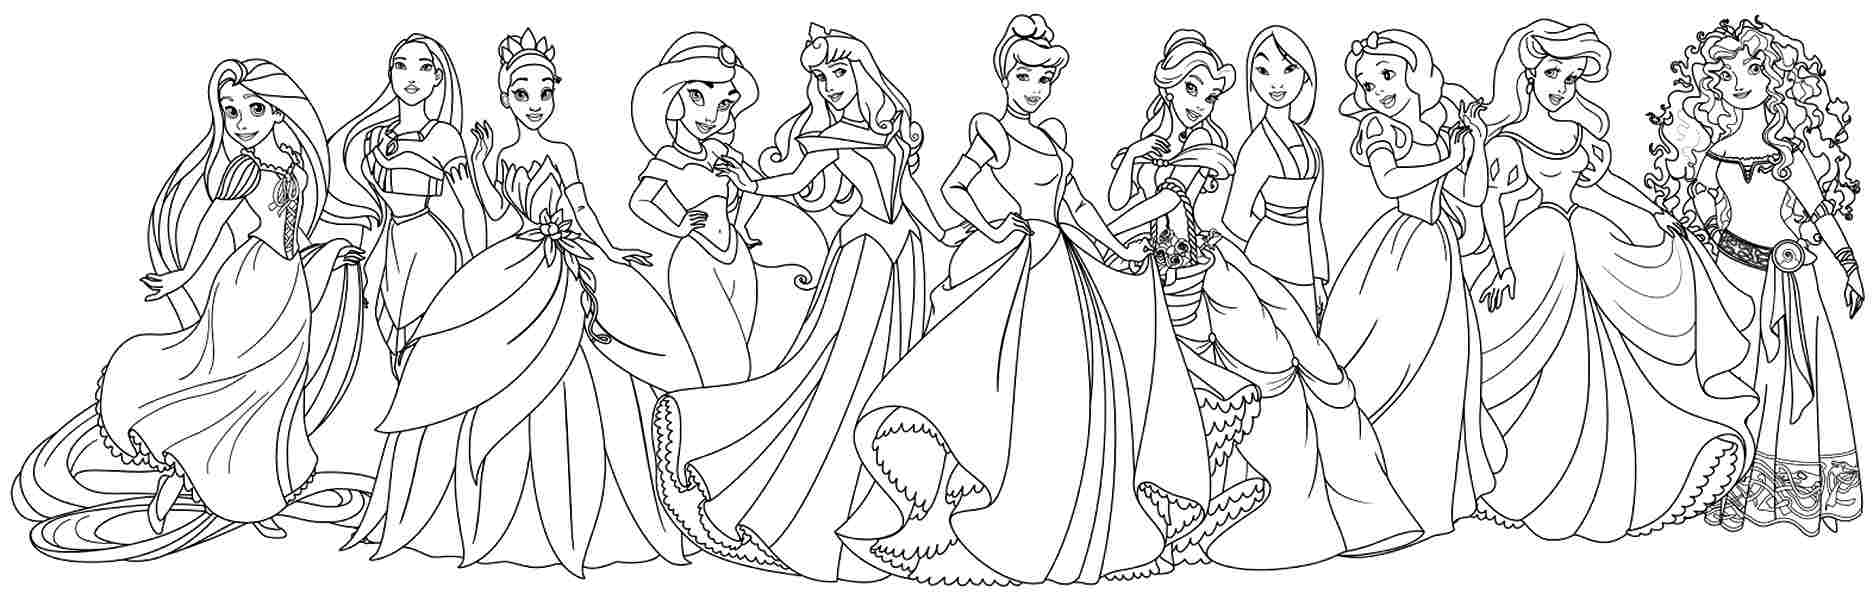 games 18780 disney princess online coloring pages - photo #25